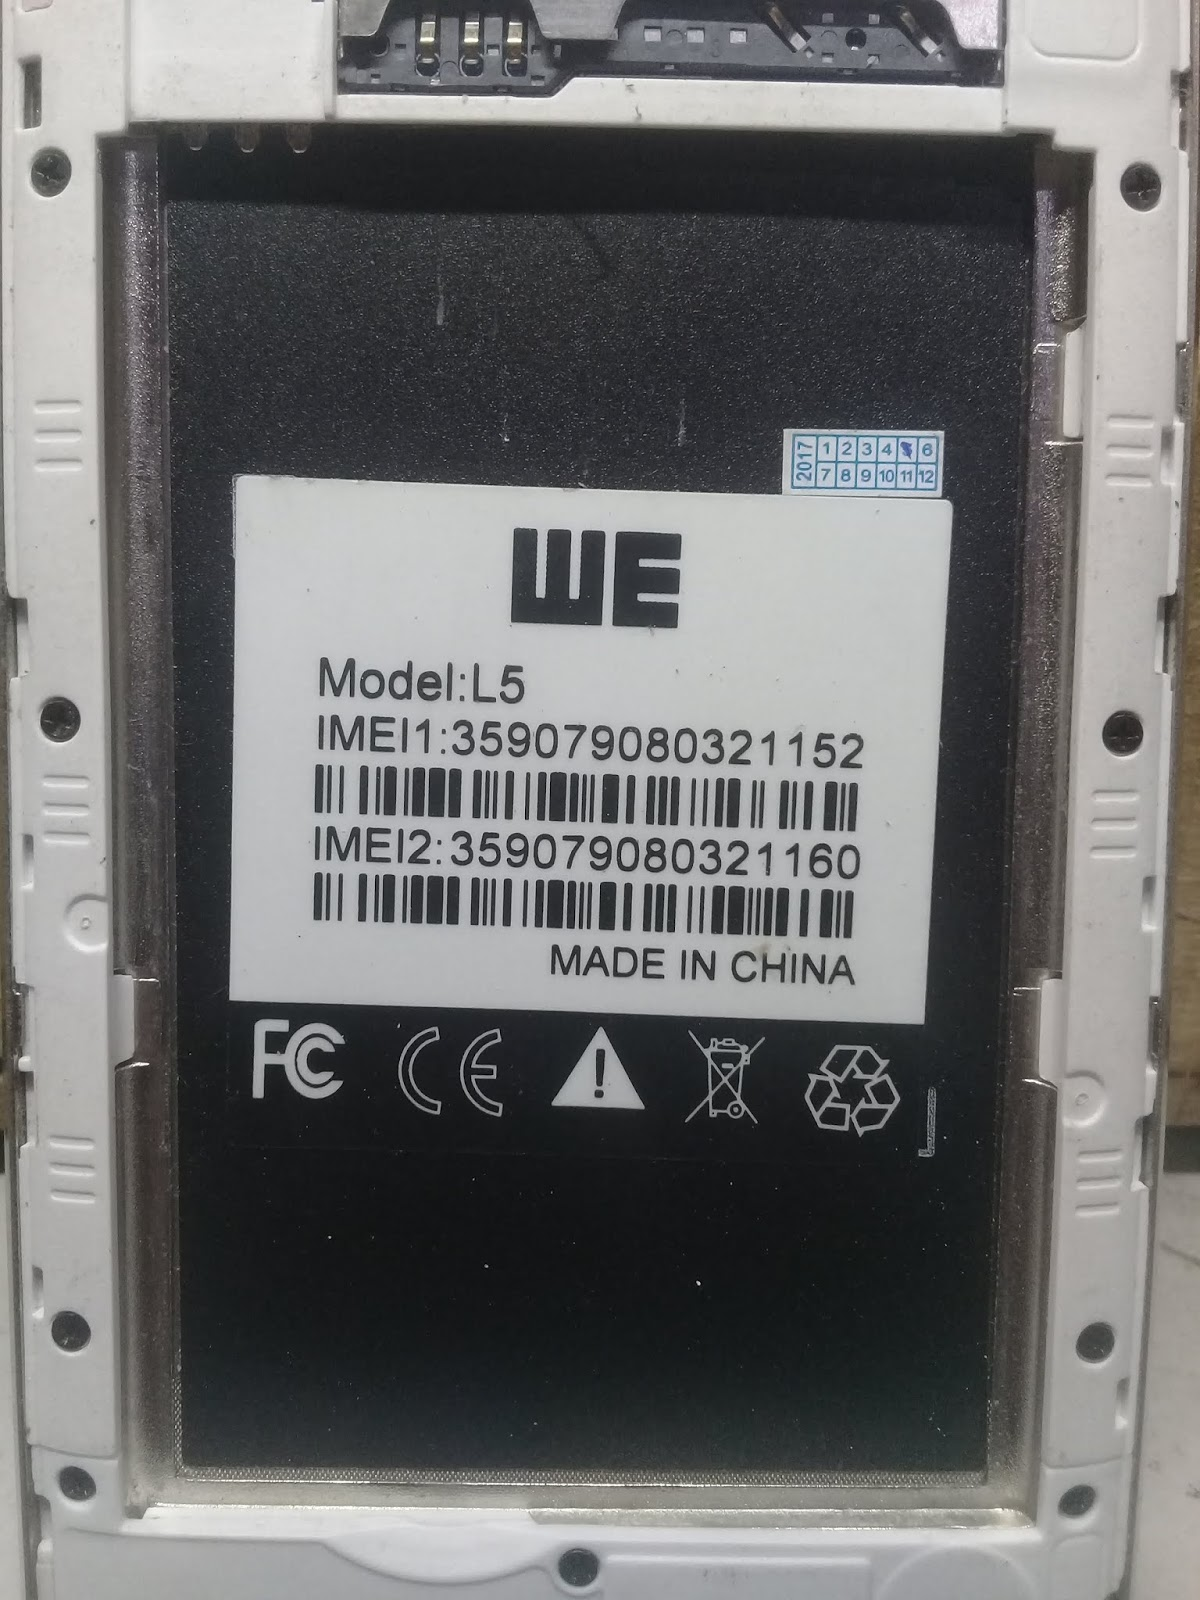 hight resolution of we l5 flash file we l5 firmware we l5 dead recovery flash file we l5 dead recovery firmware we l5 lcd fix flash file we l5 lcd firmware we l5 firmware